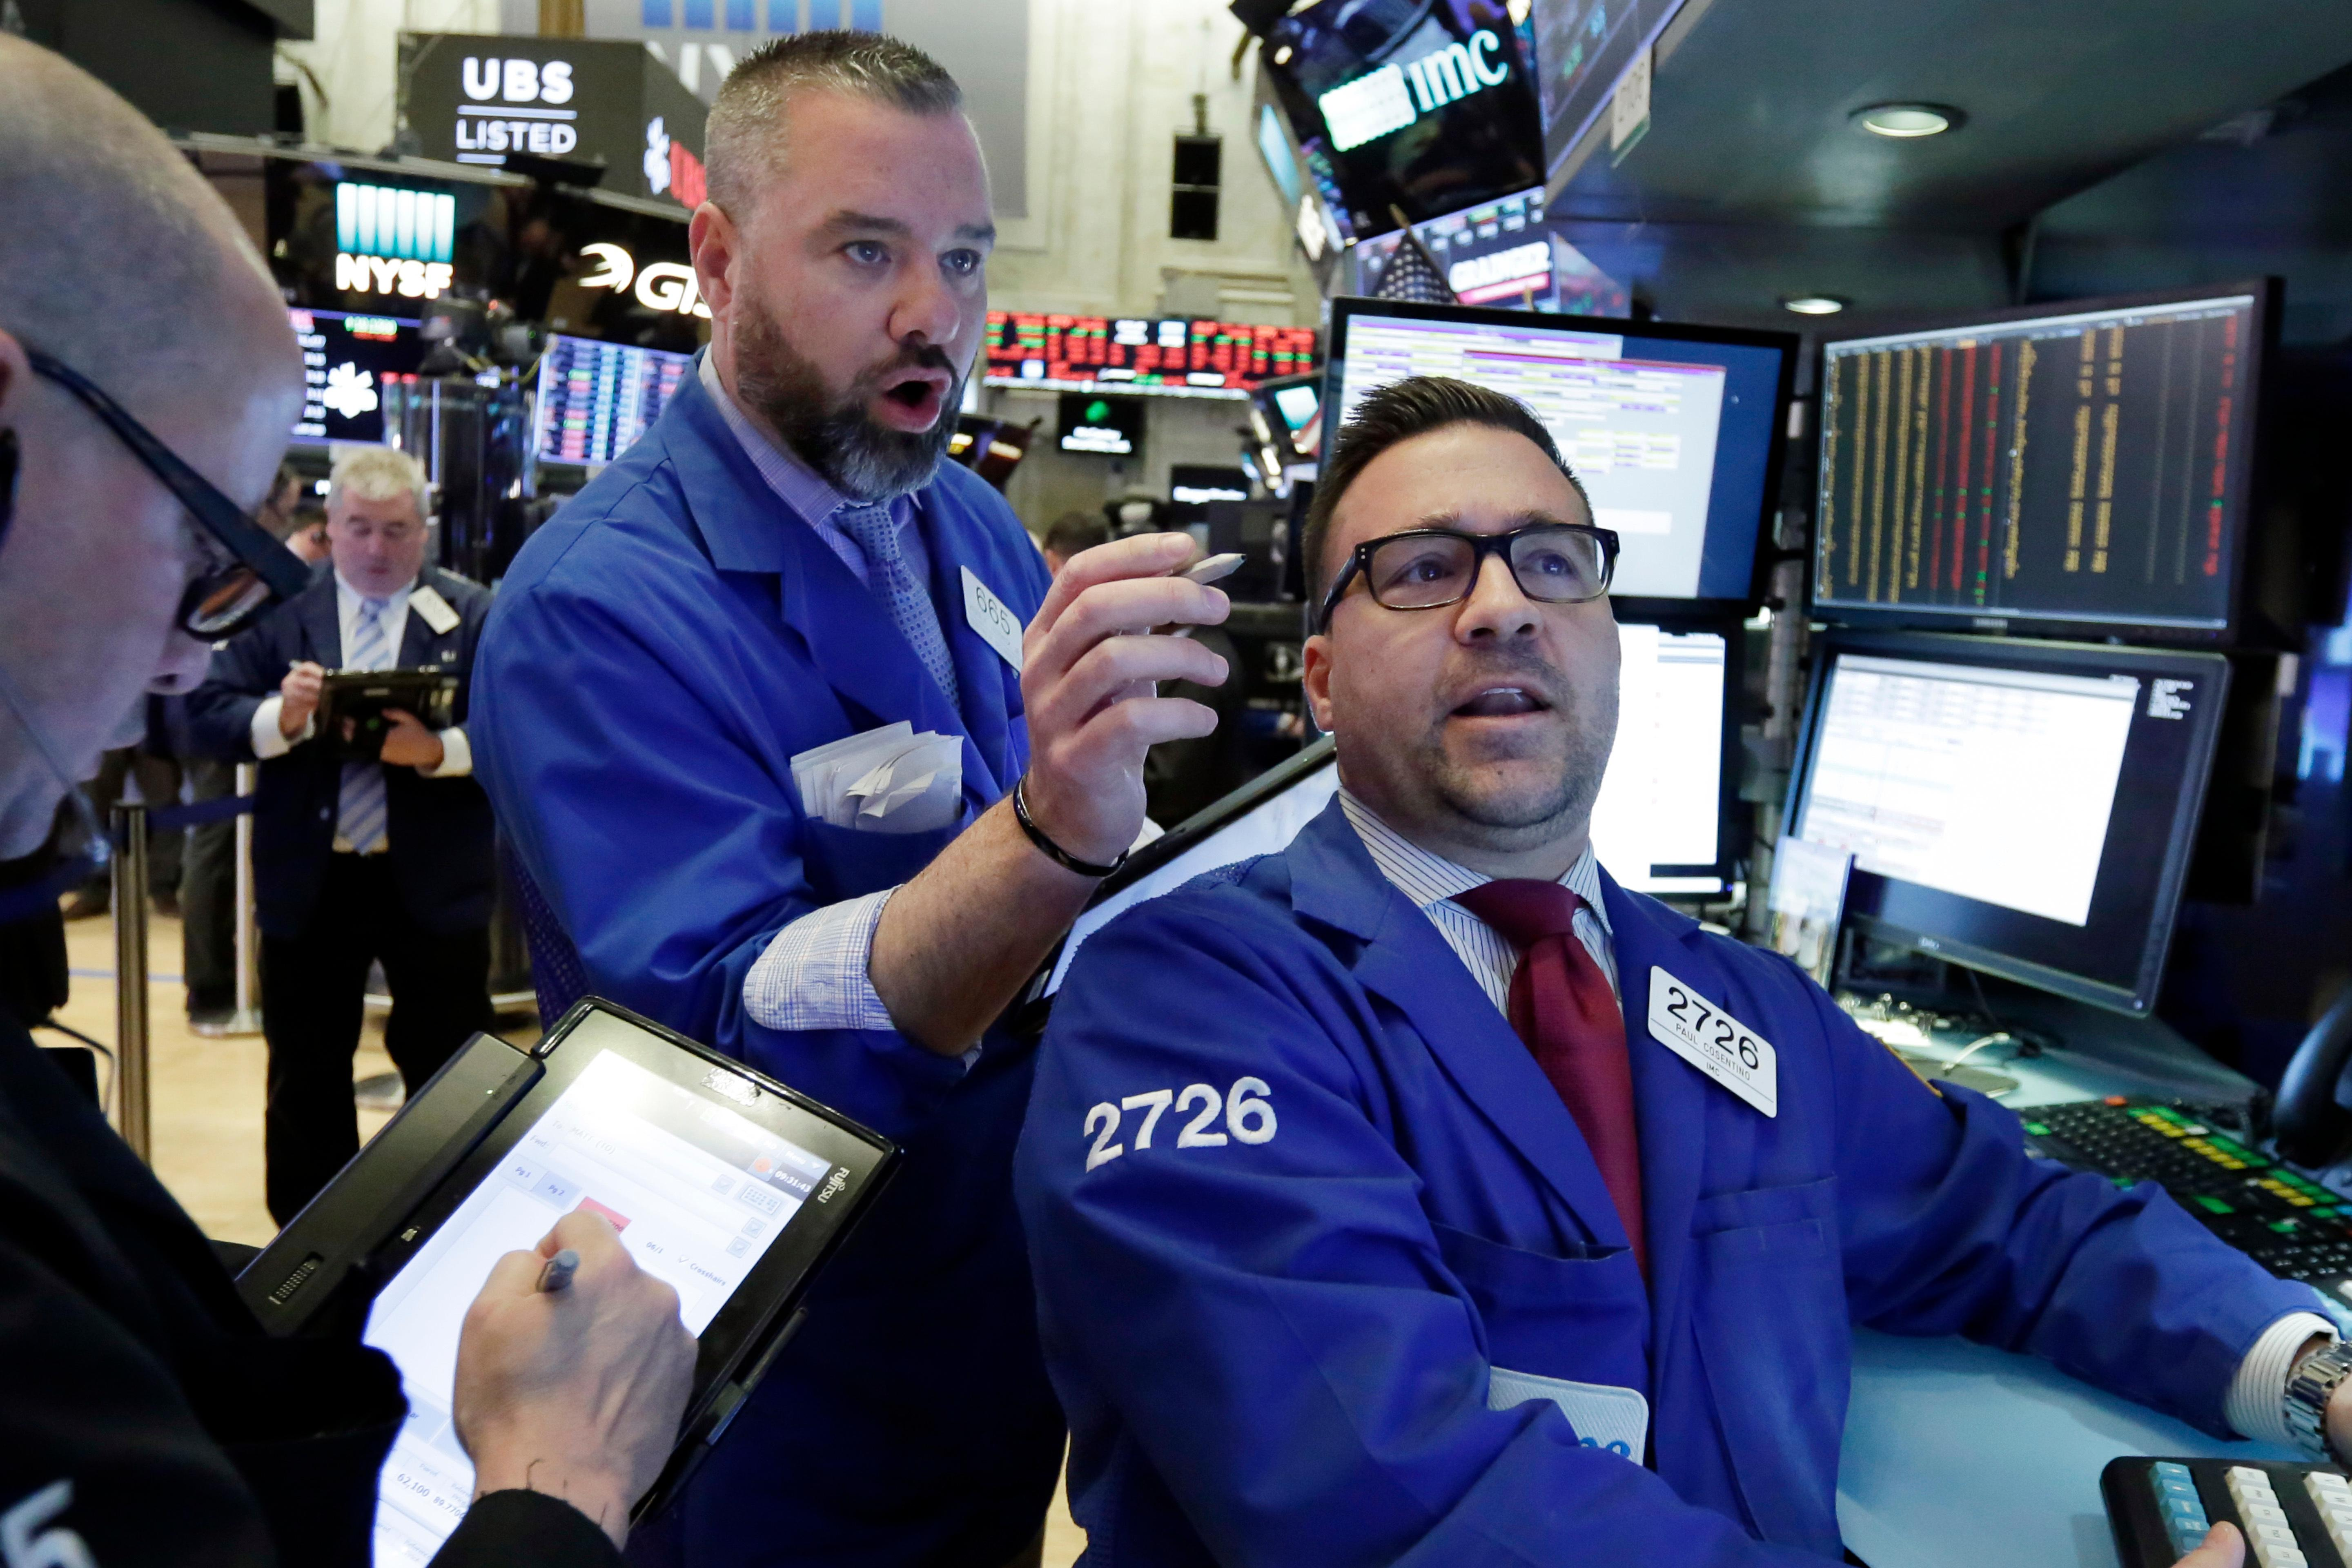 Trader Kevin Lodewick, center, and specialist Paul Cosentino, right, work on the floor of the New York Stock Exchange, Tuesday, Feb. 6, 2018. The Dow Jones industrial average fell as much as 500 points in early trading, bringing the index down 10 percent from the record high it reached on Jan. 26. (AP Photo/Richard Drew)<p></p>